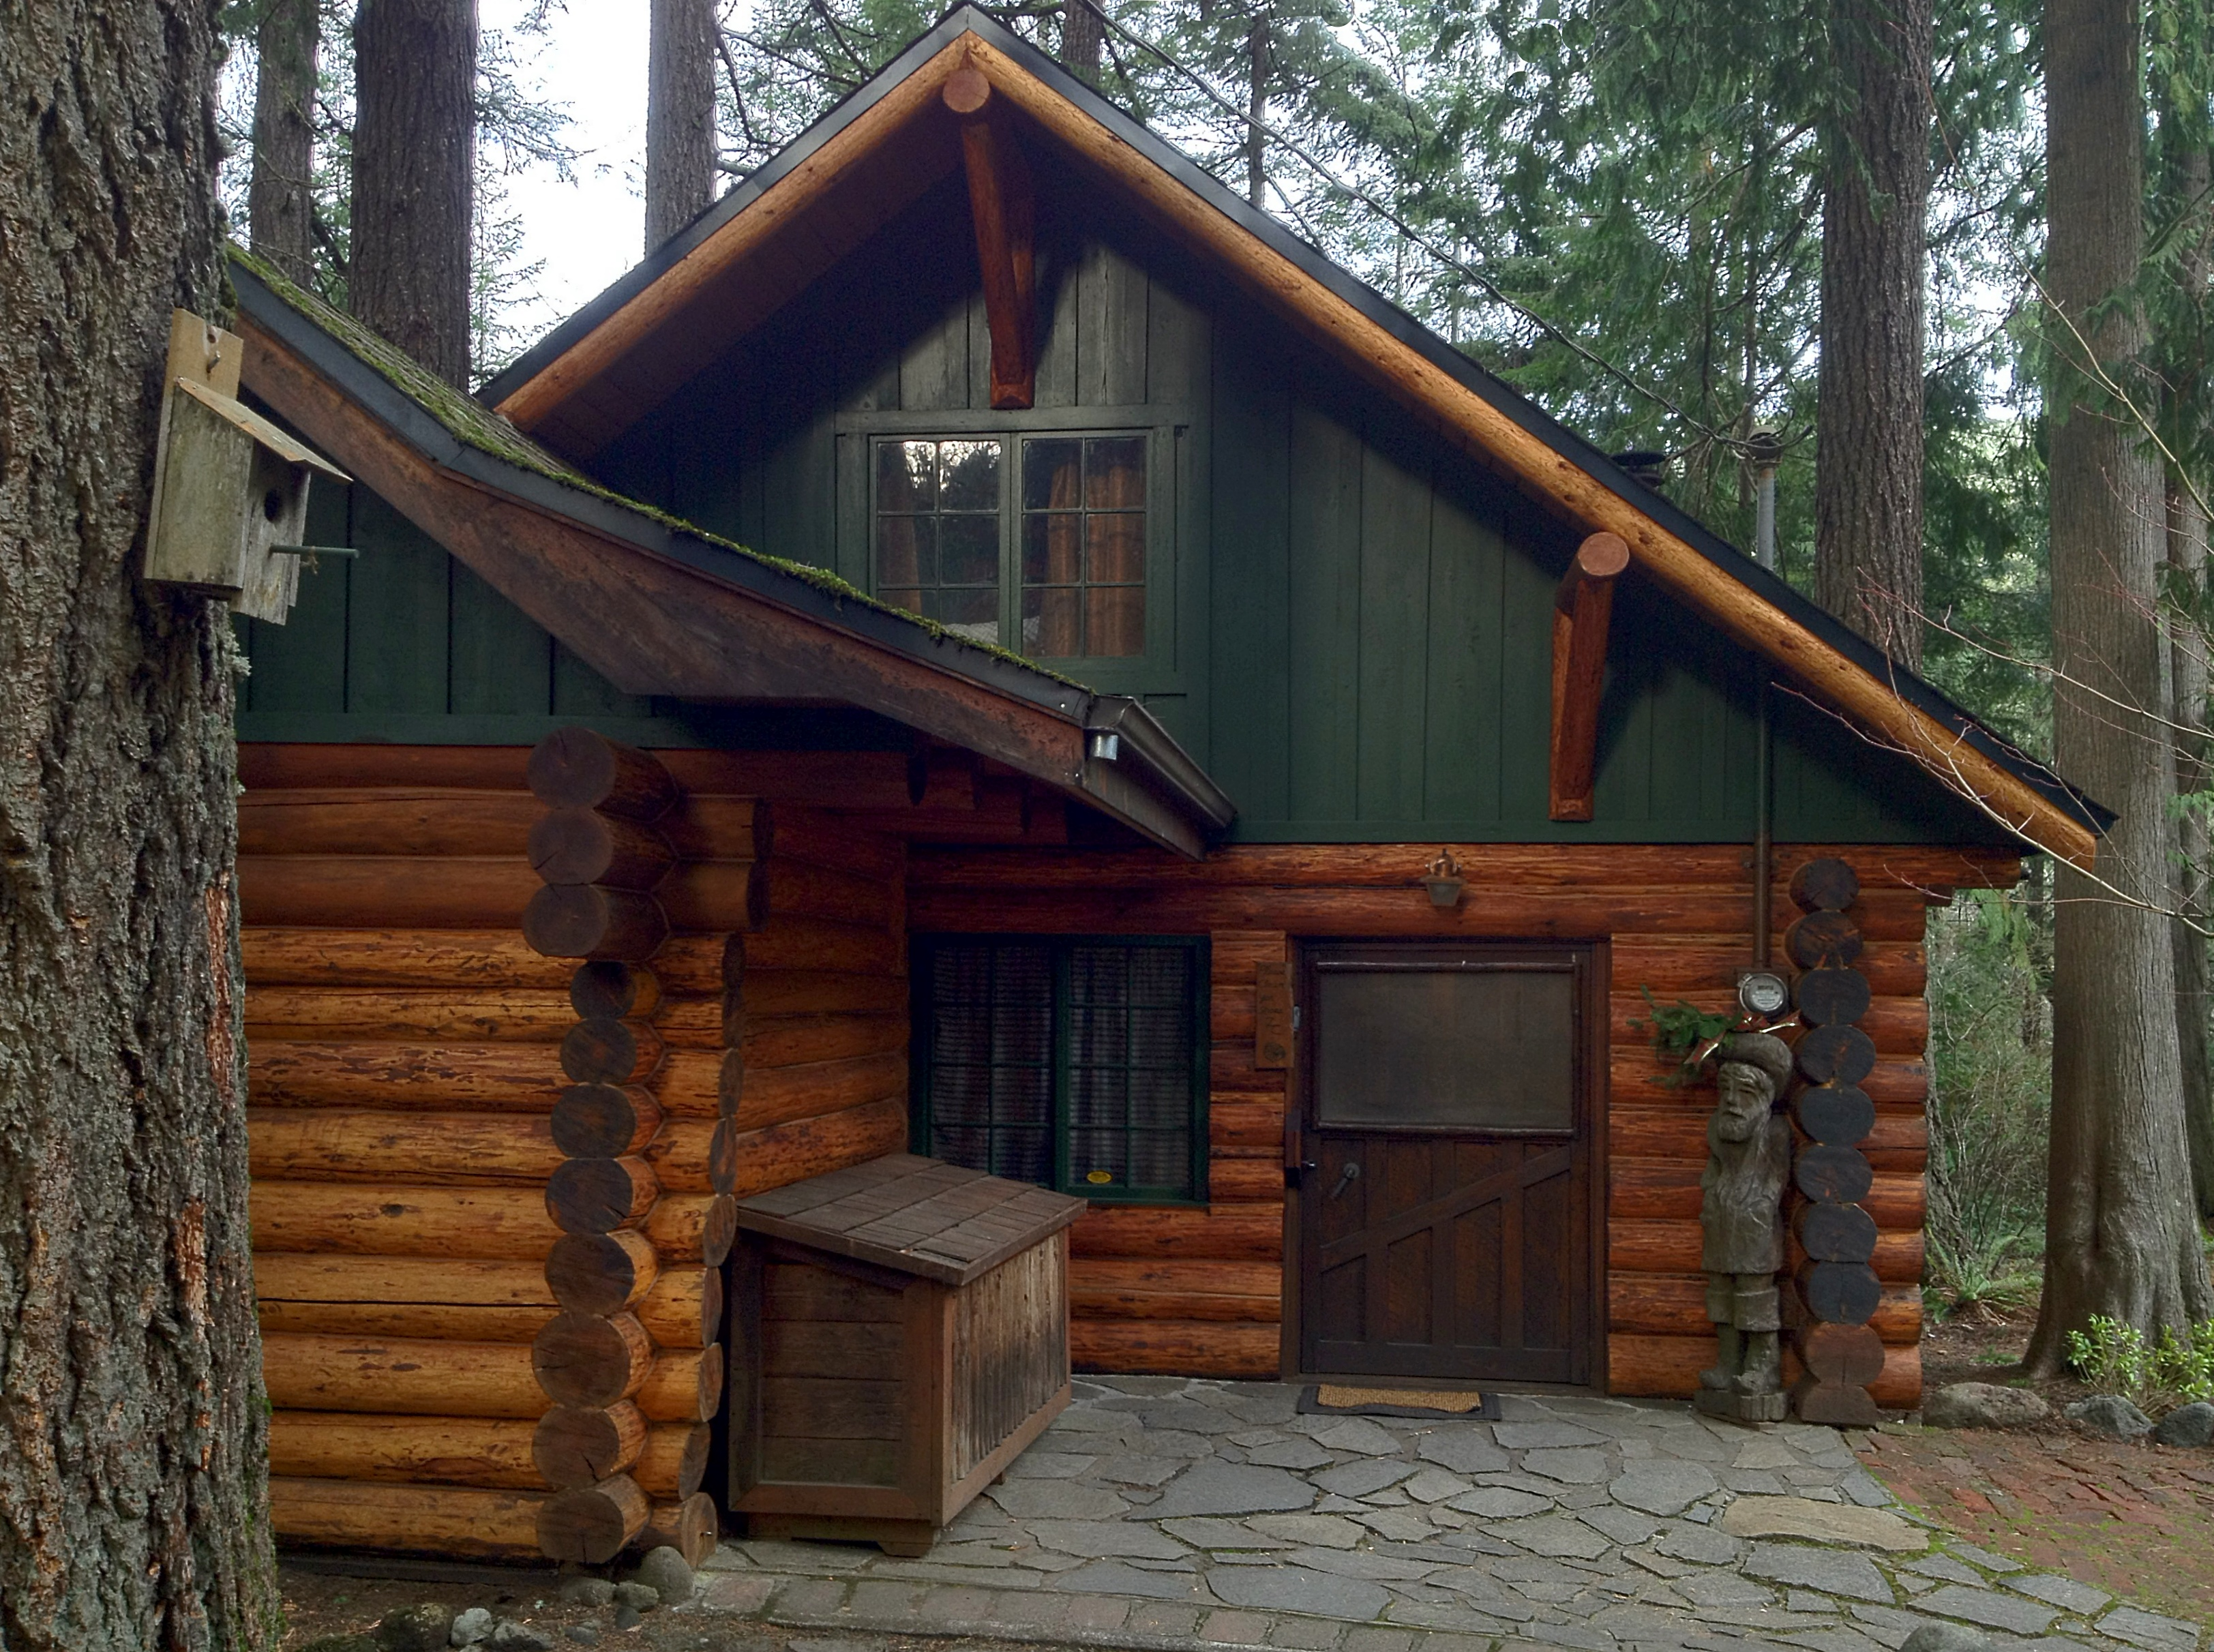 download cabin mount amazing best oregon long portland zoes zijiapin the property being this for vacation rentals medicine after or cheap rental my vrbo log day bedroom cabins a is selling rent hood active on to im mt of in welches